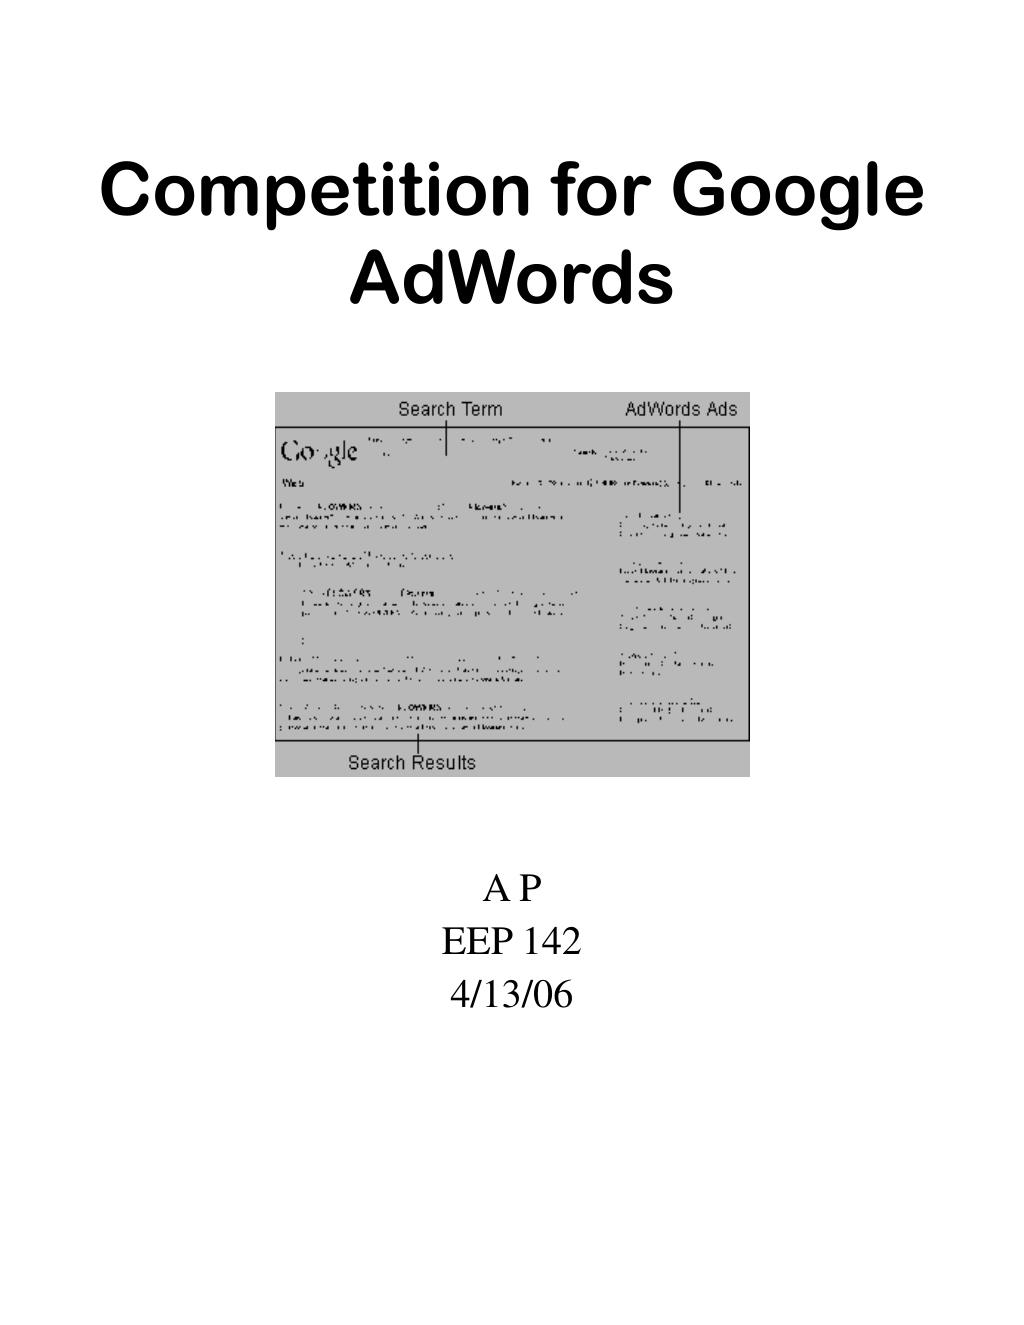 Competition for Google AdWords